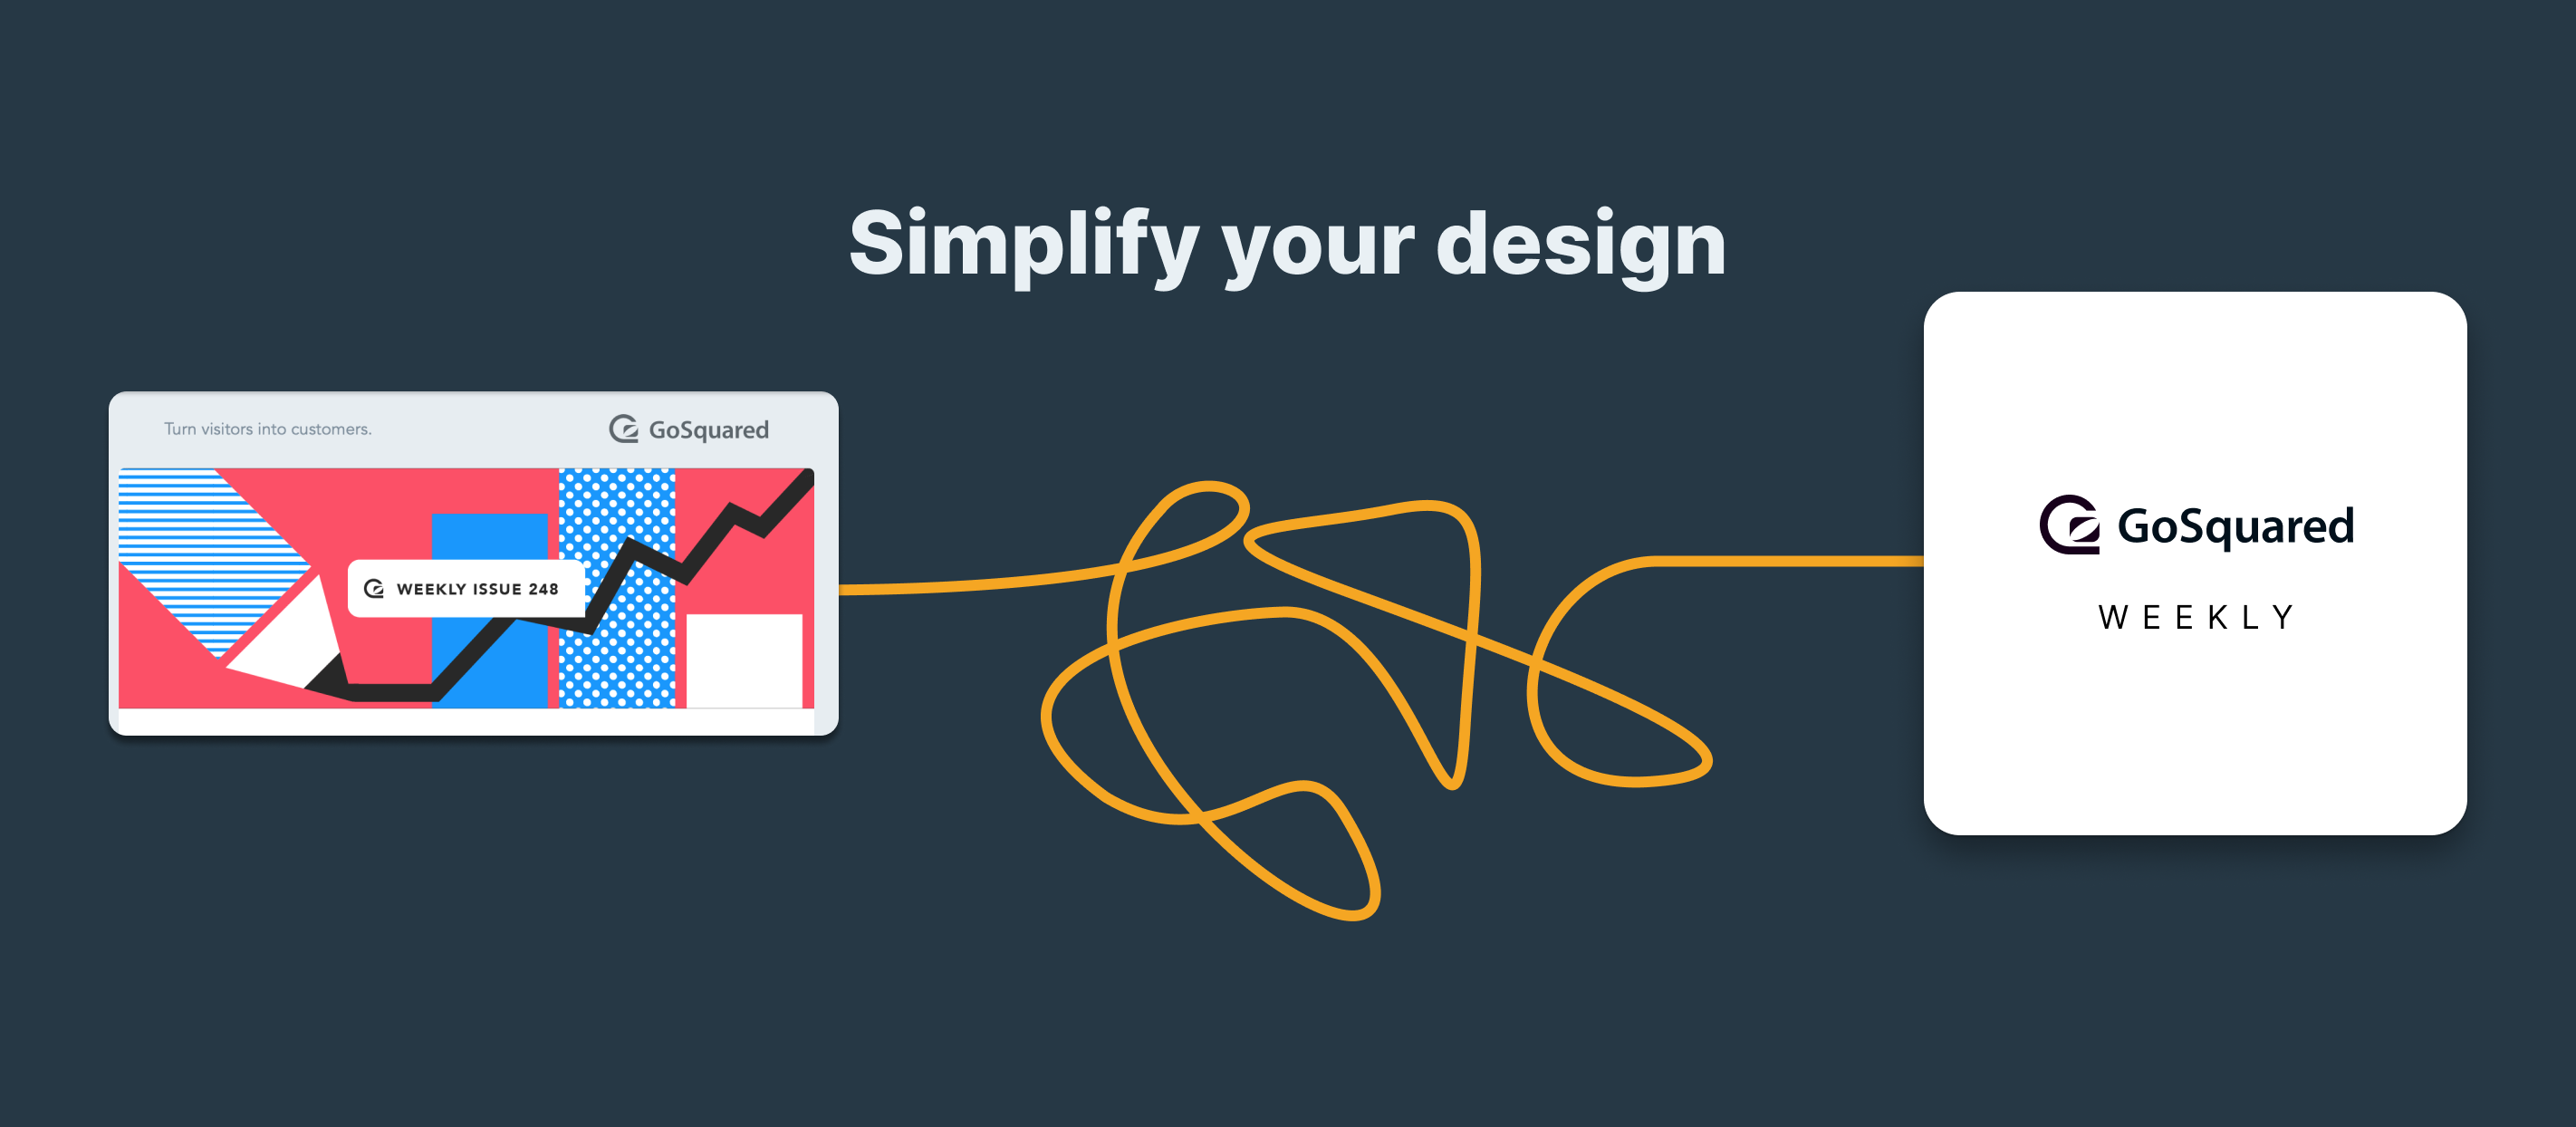 simplify your design